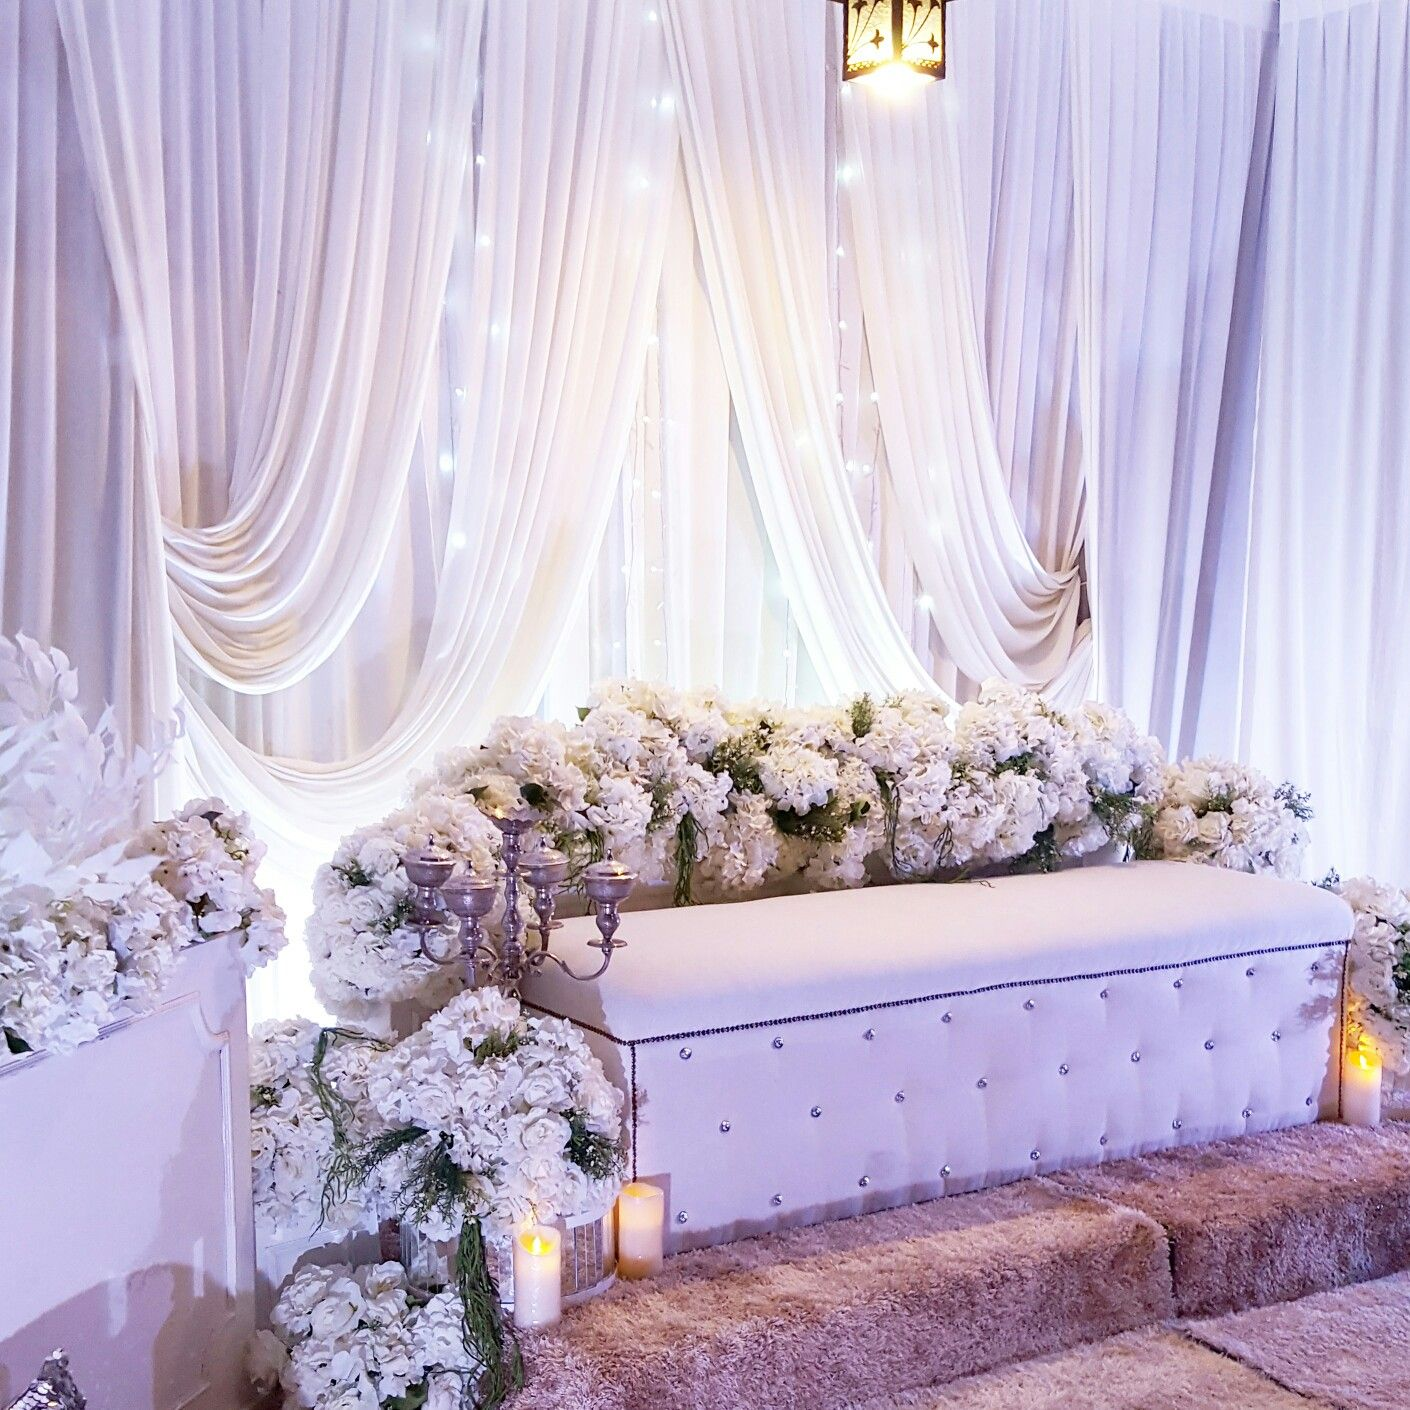 White Theme Wedding Pelamin By Enrich Wedding Pinterest